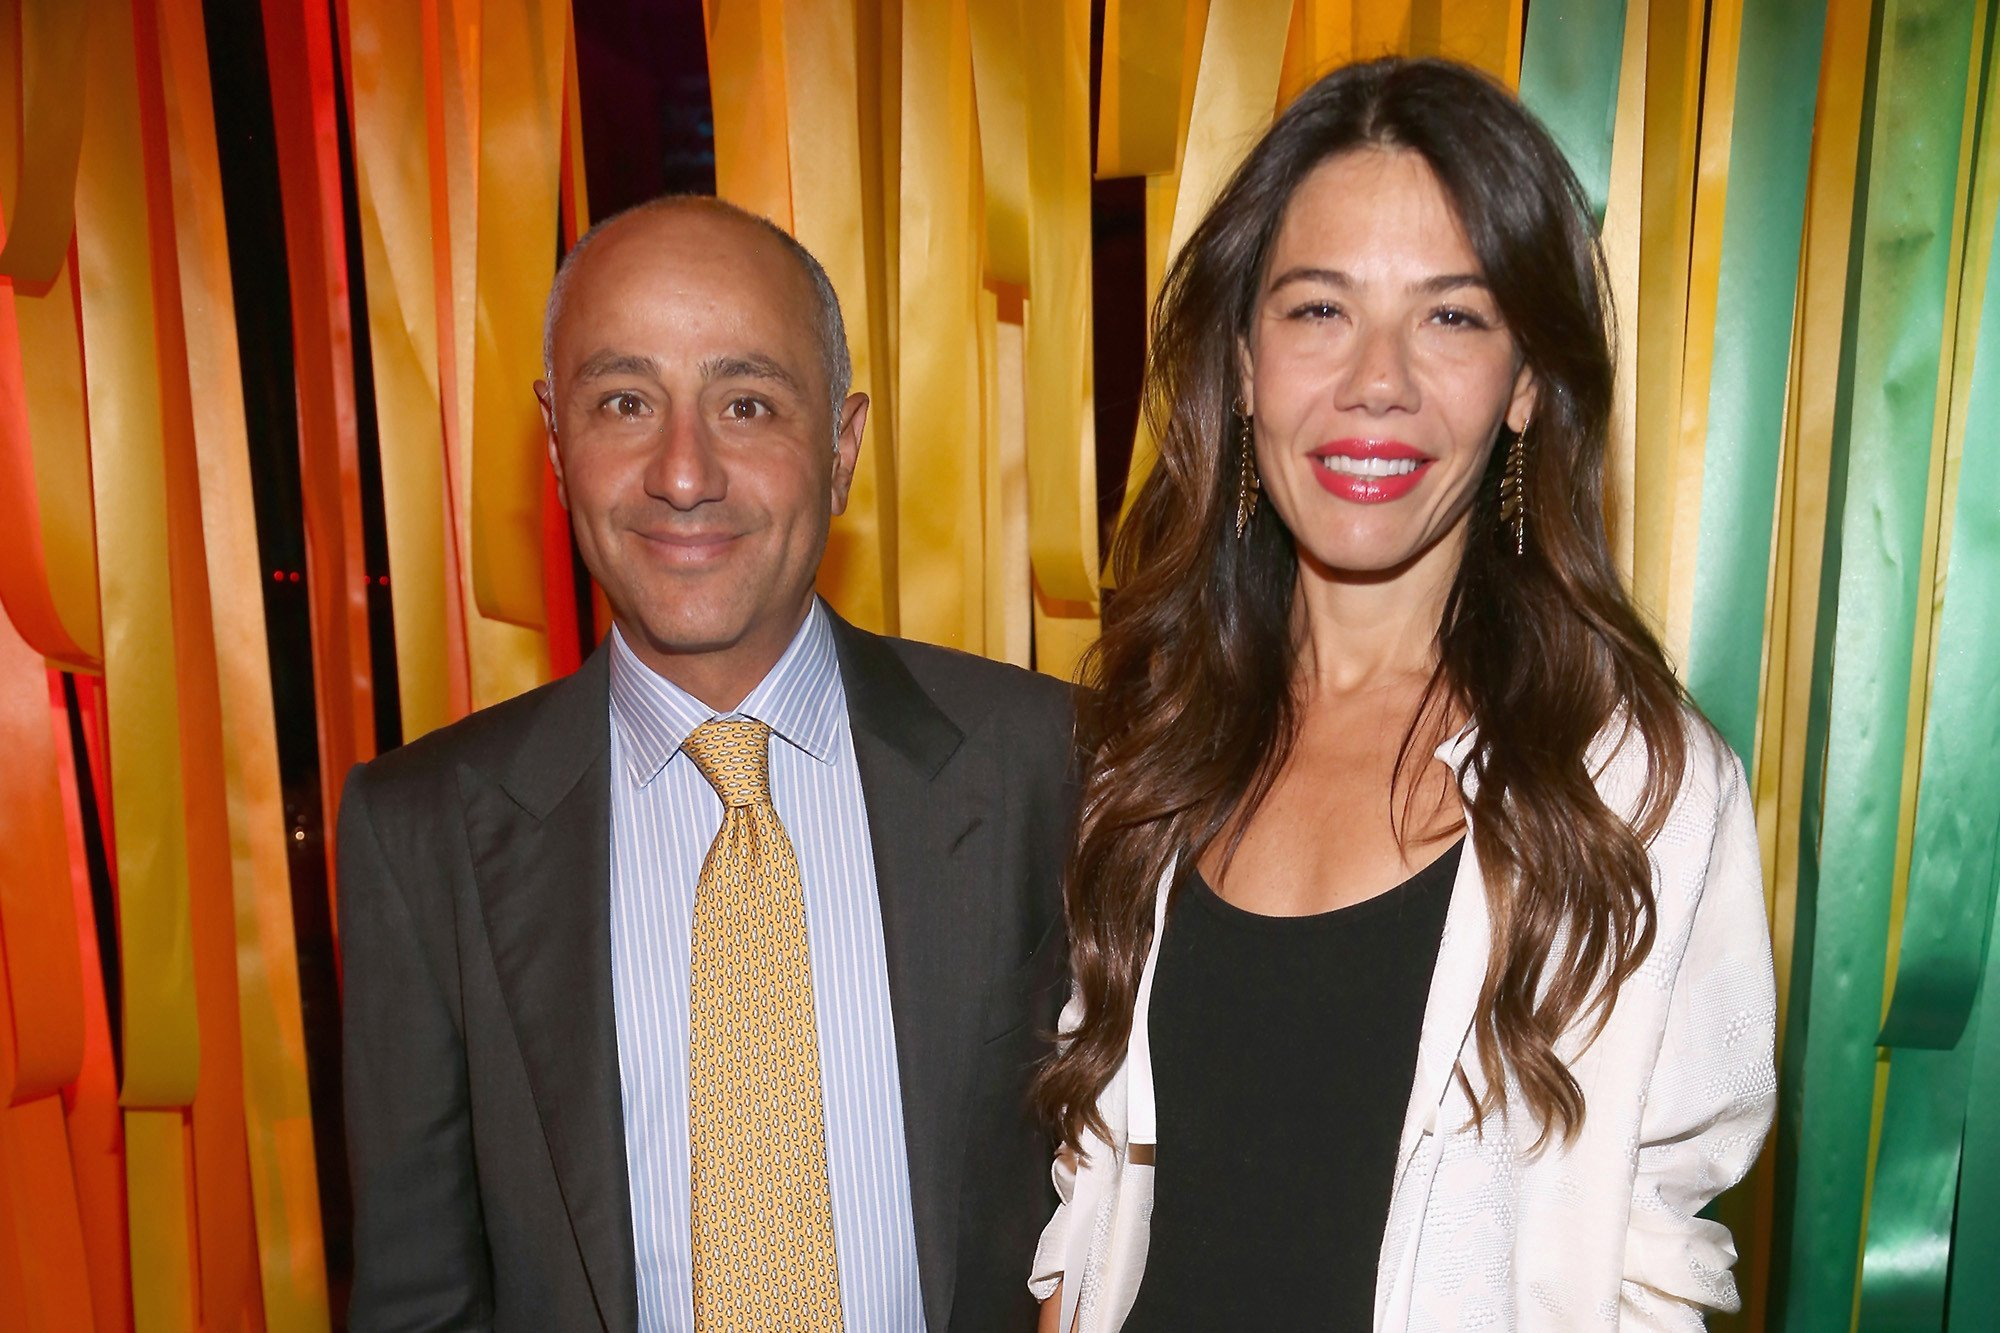 David Mugrabi's estranged wife sues for cut of their townhouse